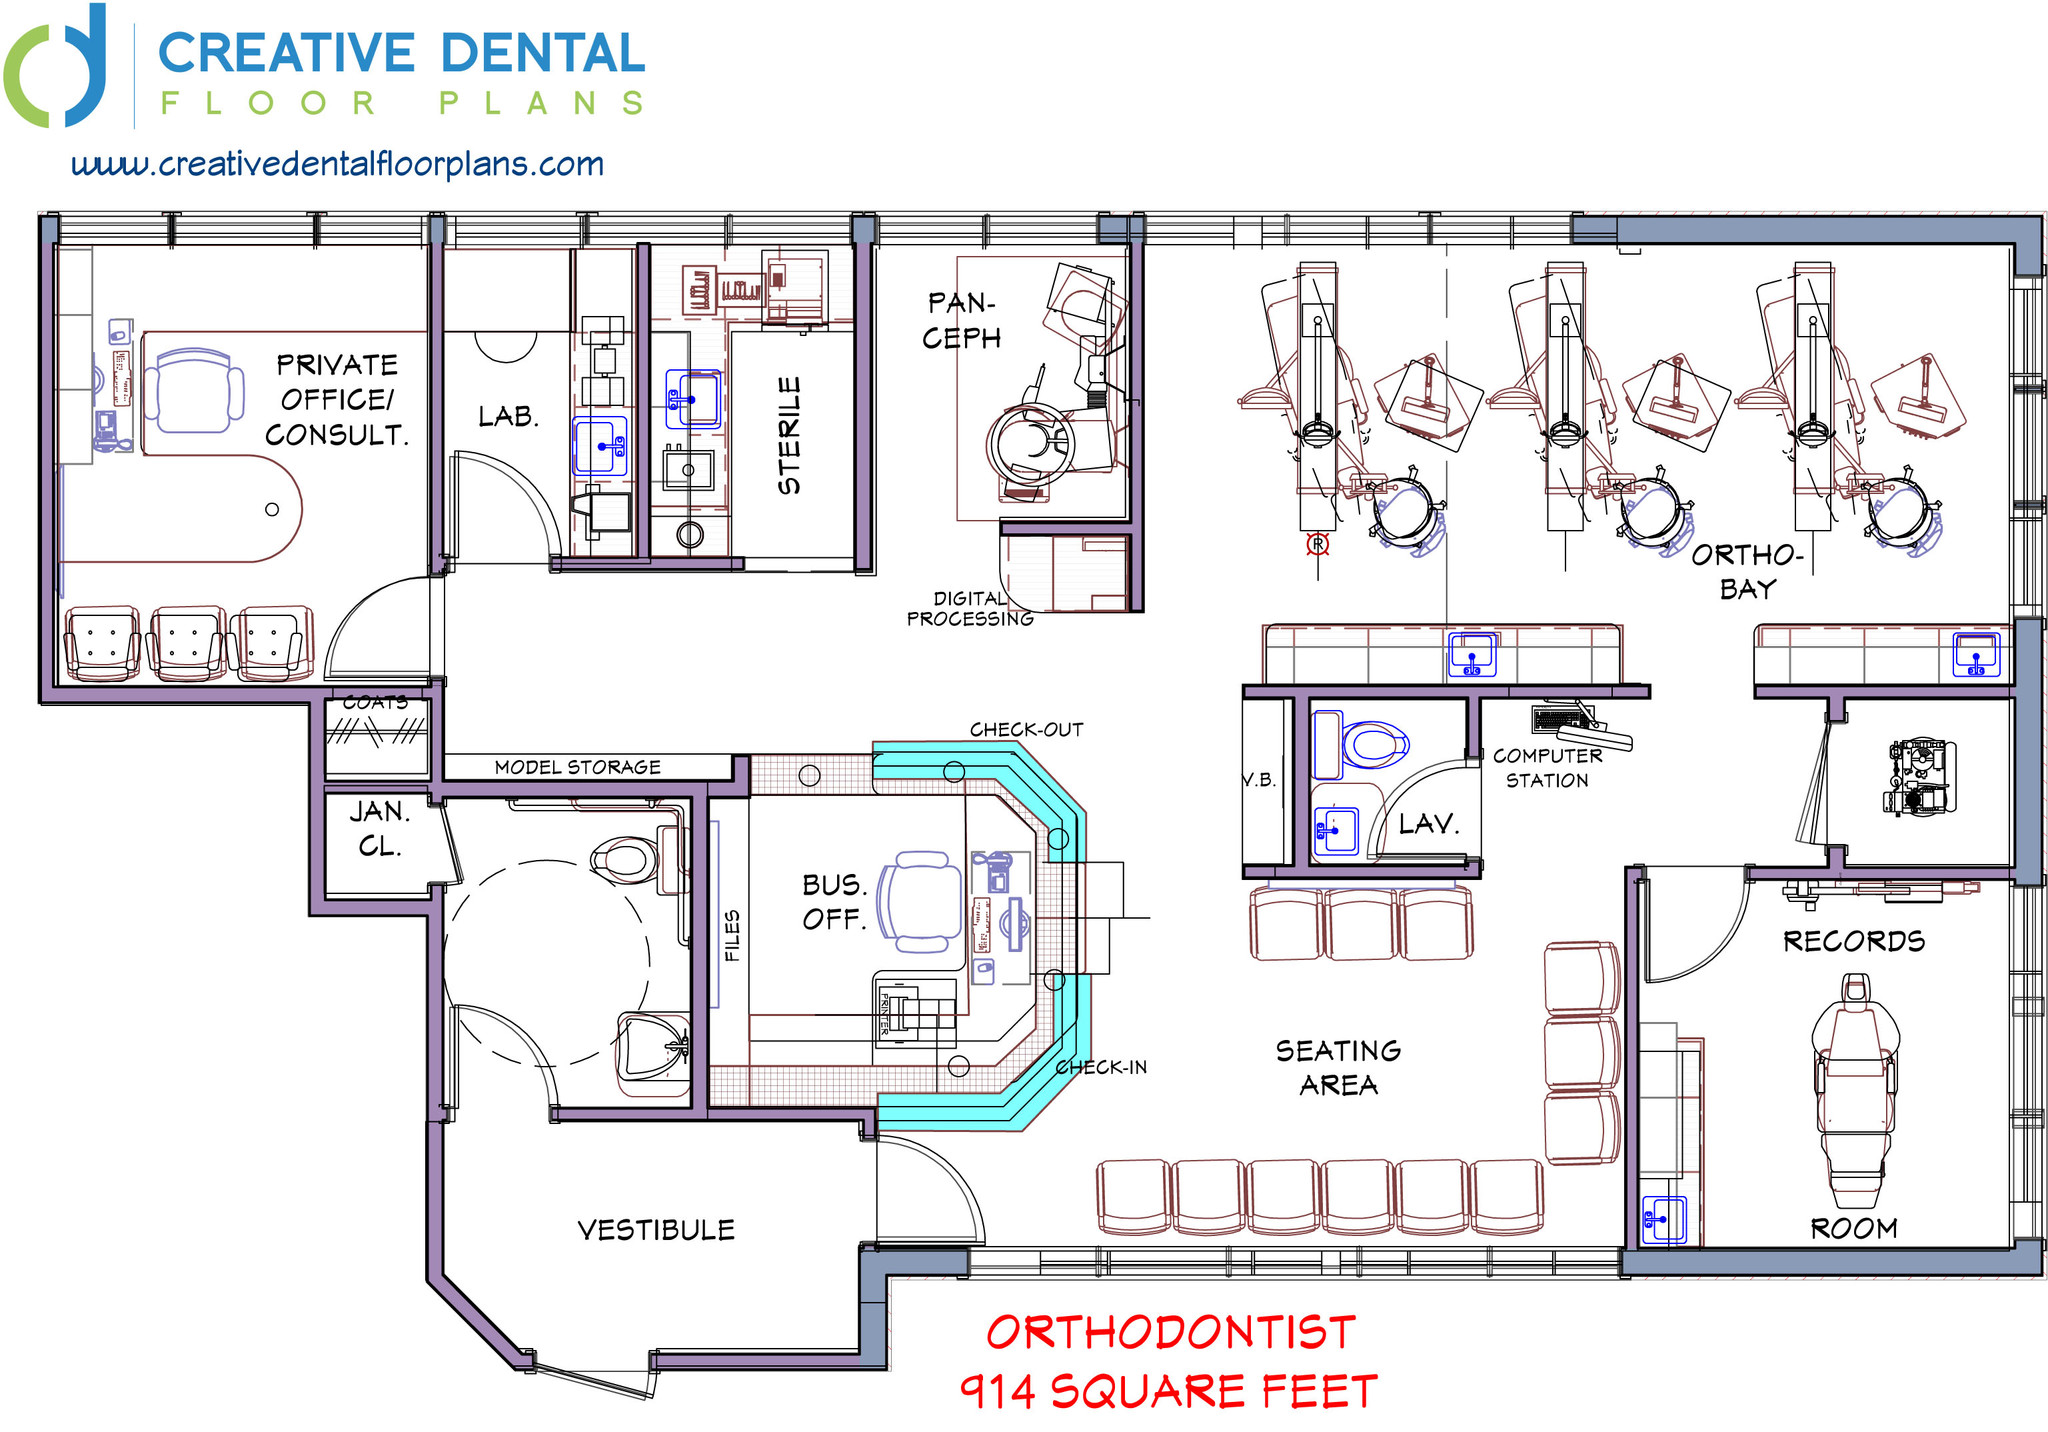 Orthodontic office design floor plan meze blog for Floor plan layout